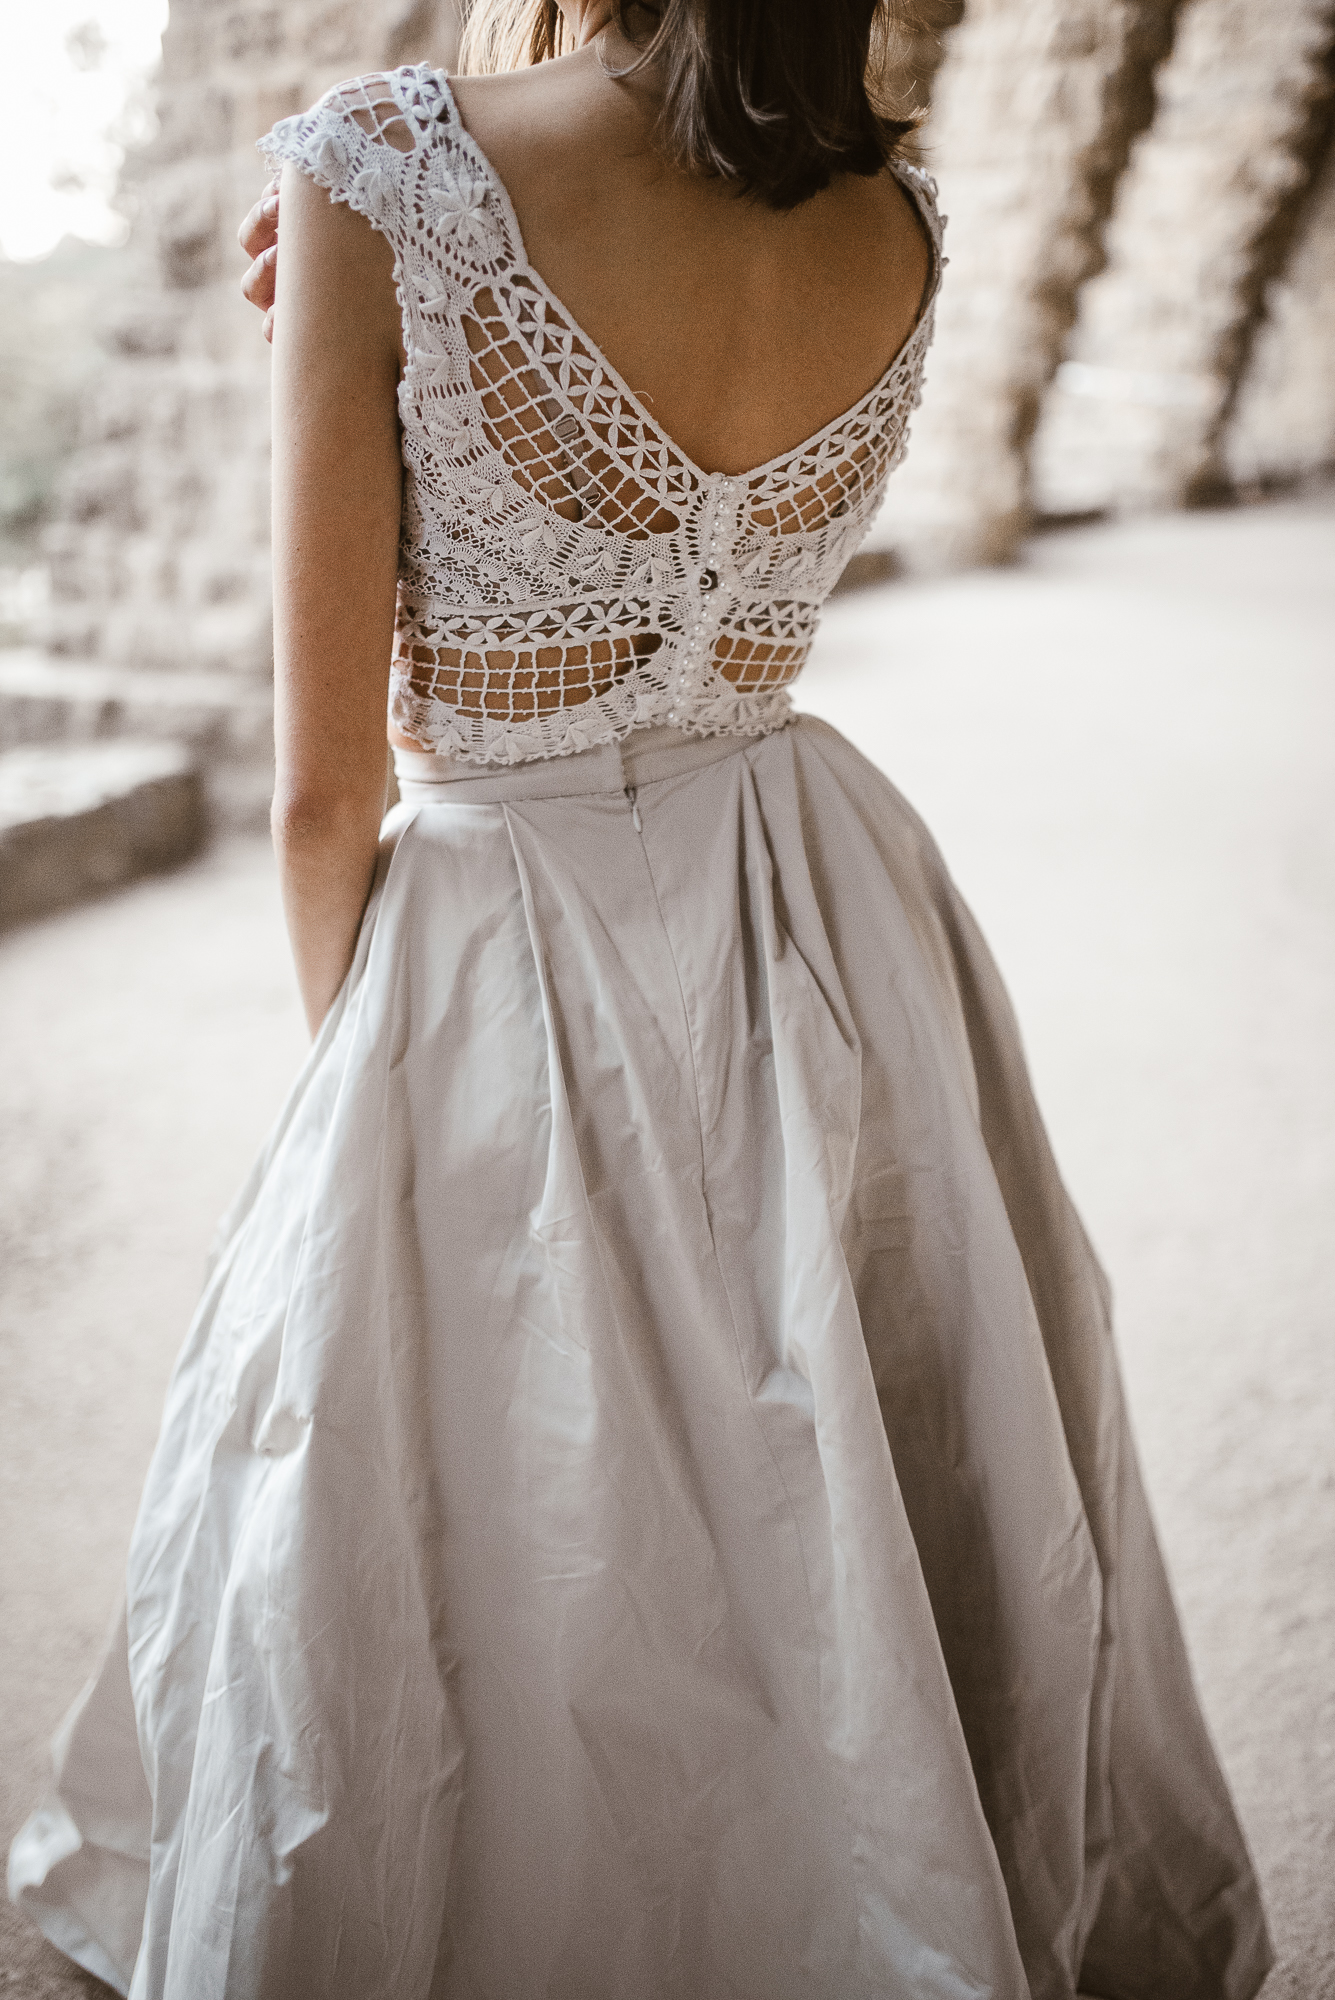 wedding dress inspiration from the land of Pronovias in Güell Park | The Wedding Fox